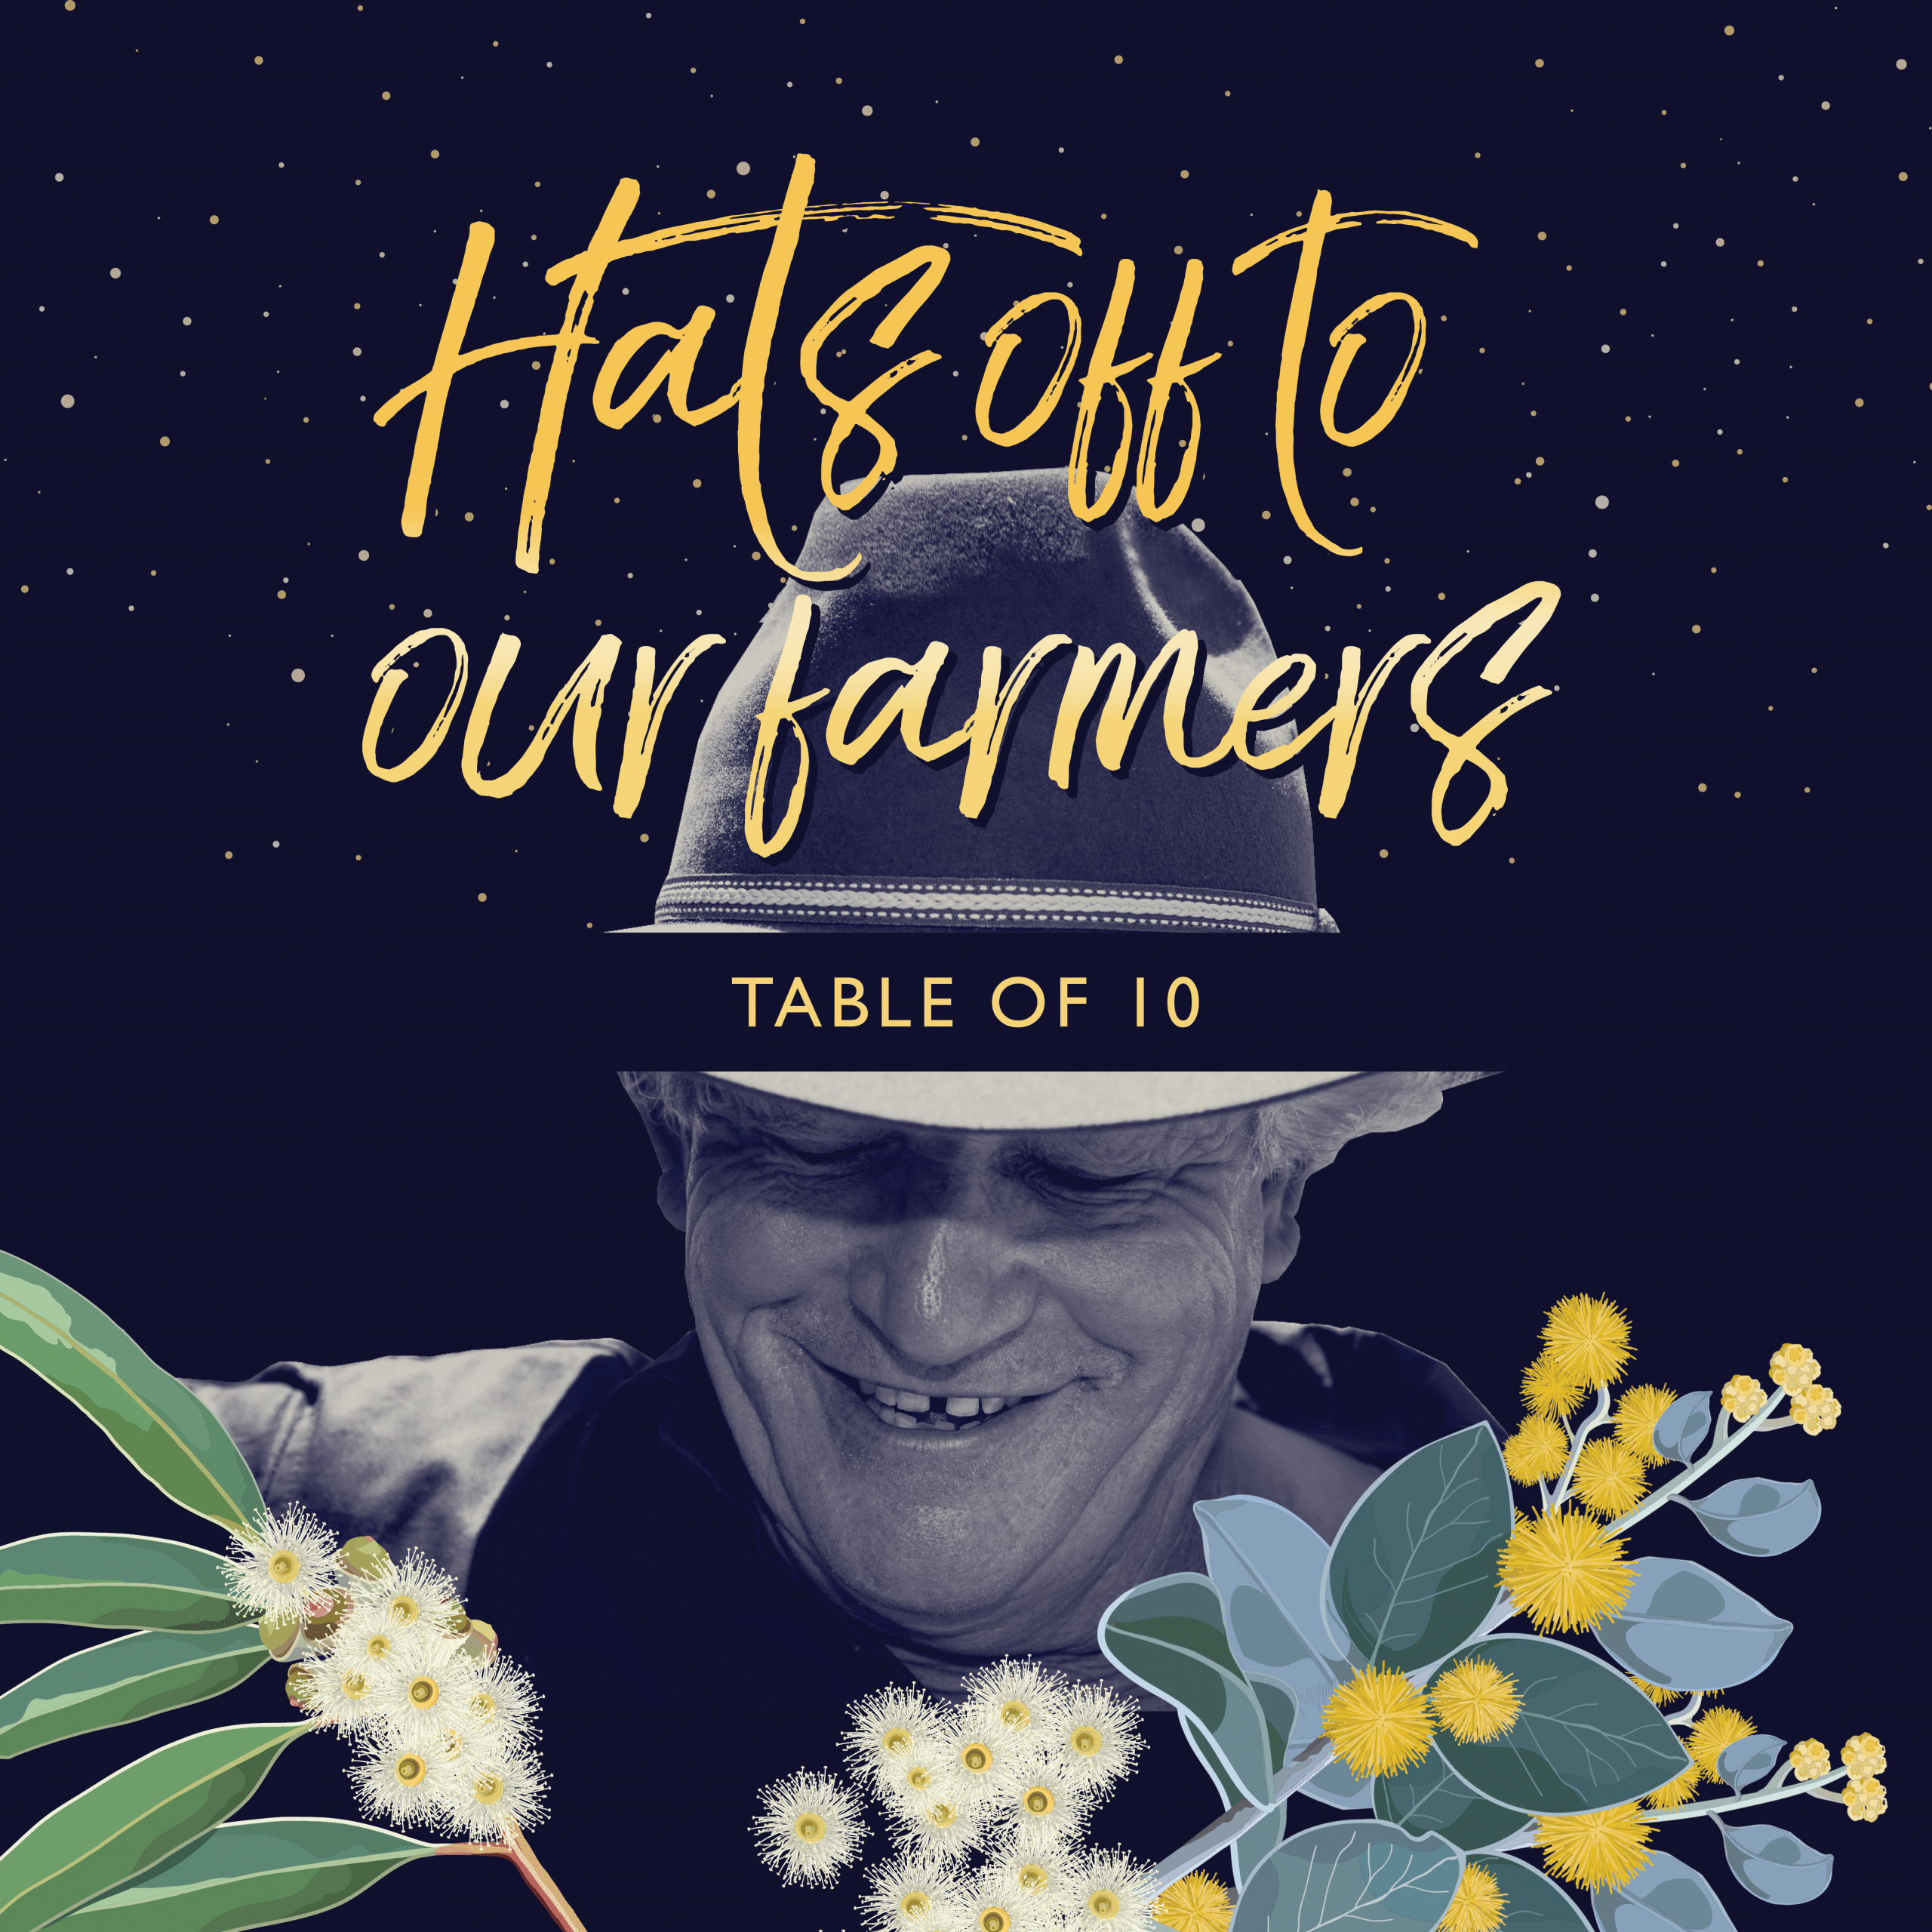 Image of Hats off to our farmers table of 10